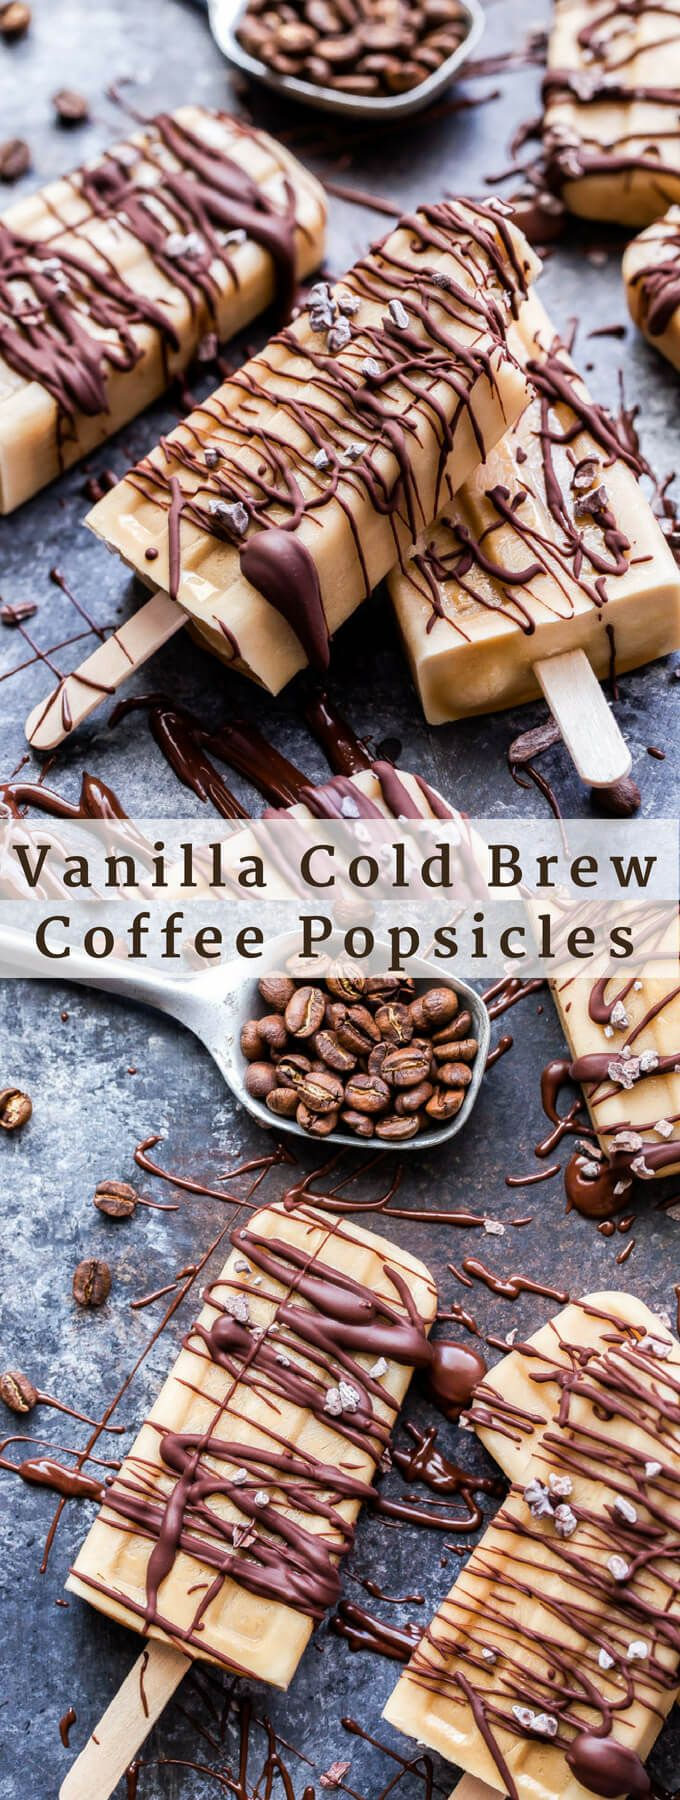 Vanilla Cold Brew Coffee Popsicles - Recipe Runner